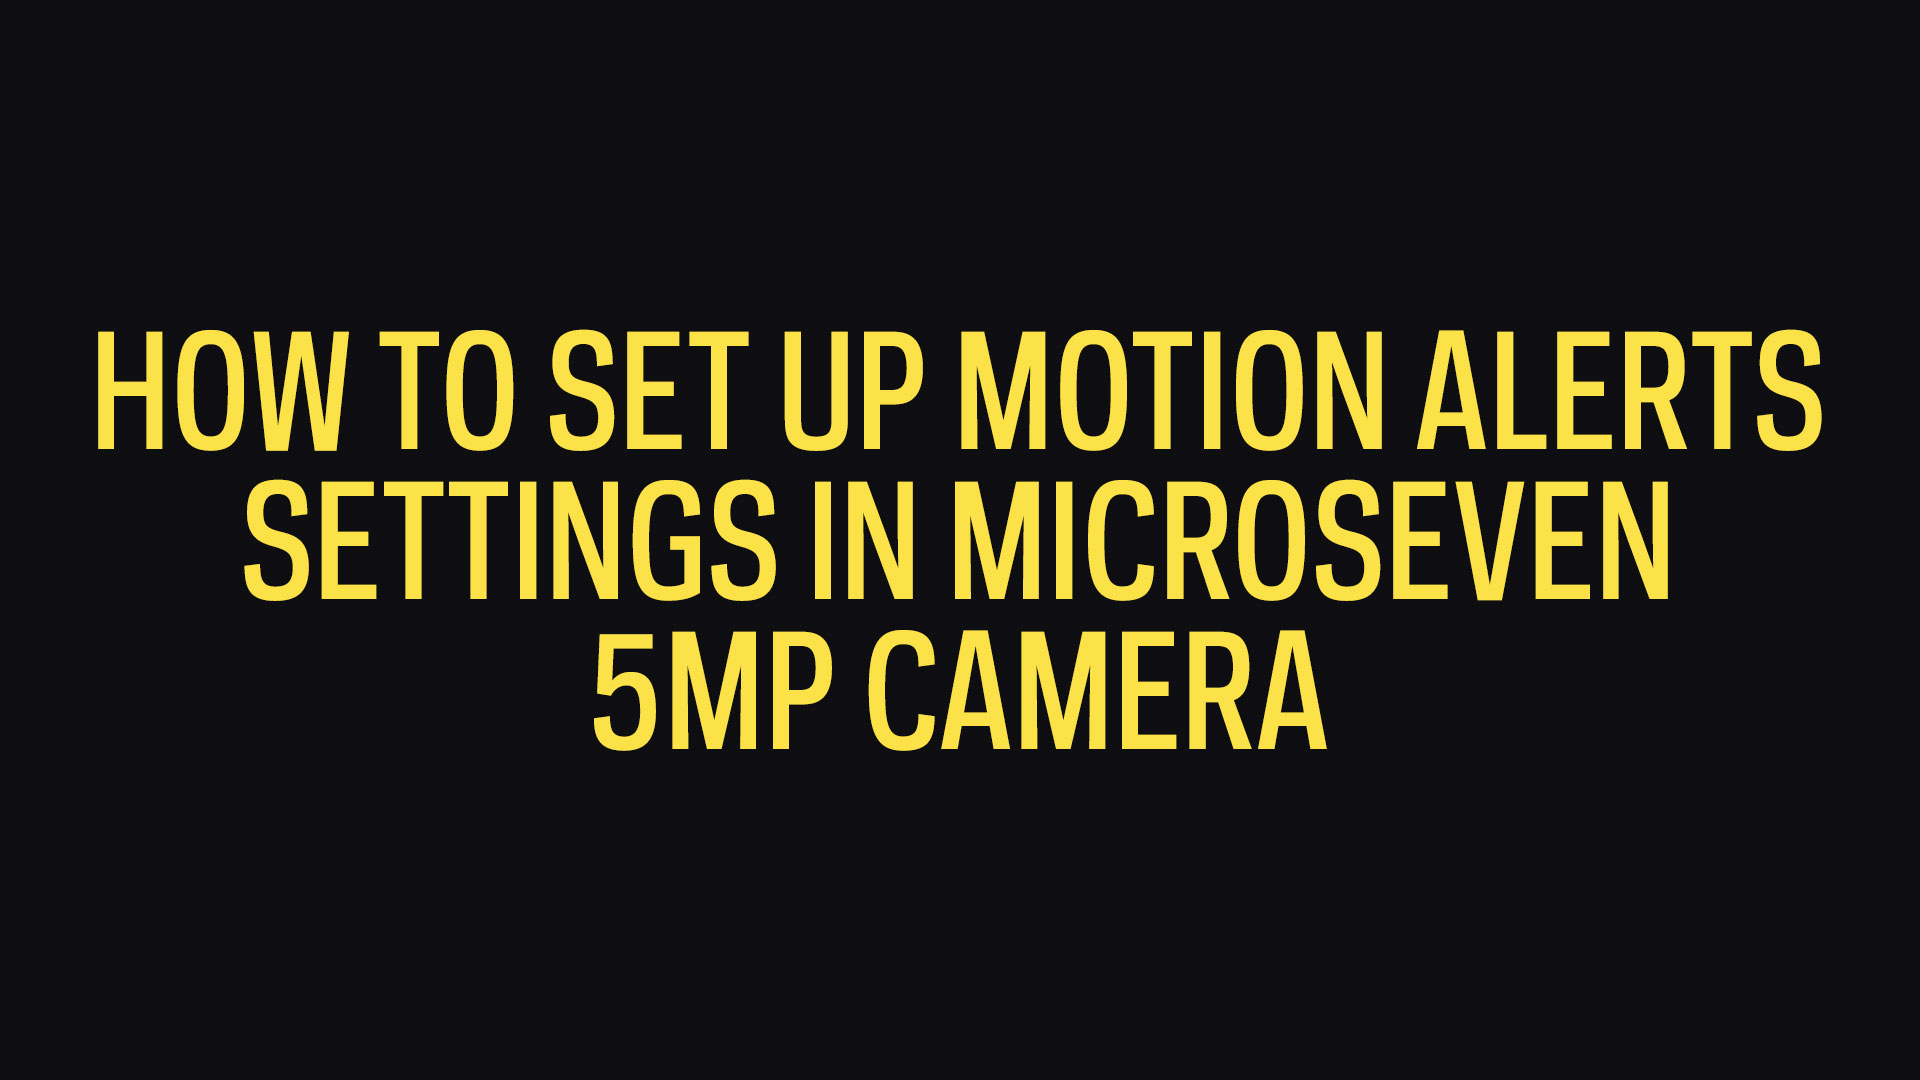 How To Set Up Motion Alerts Settings In Microseven 5MP Camera